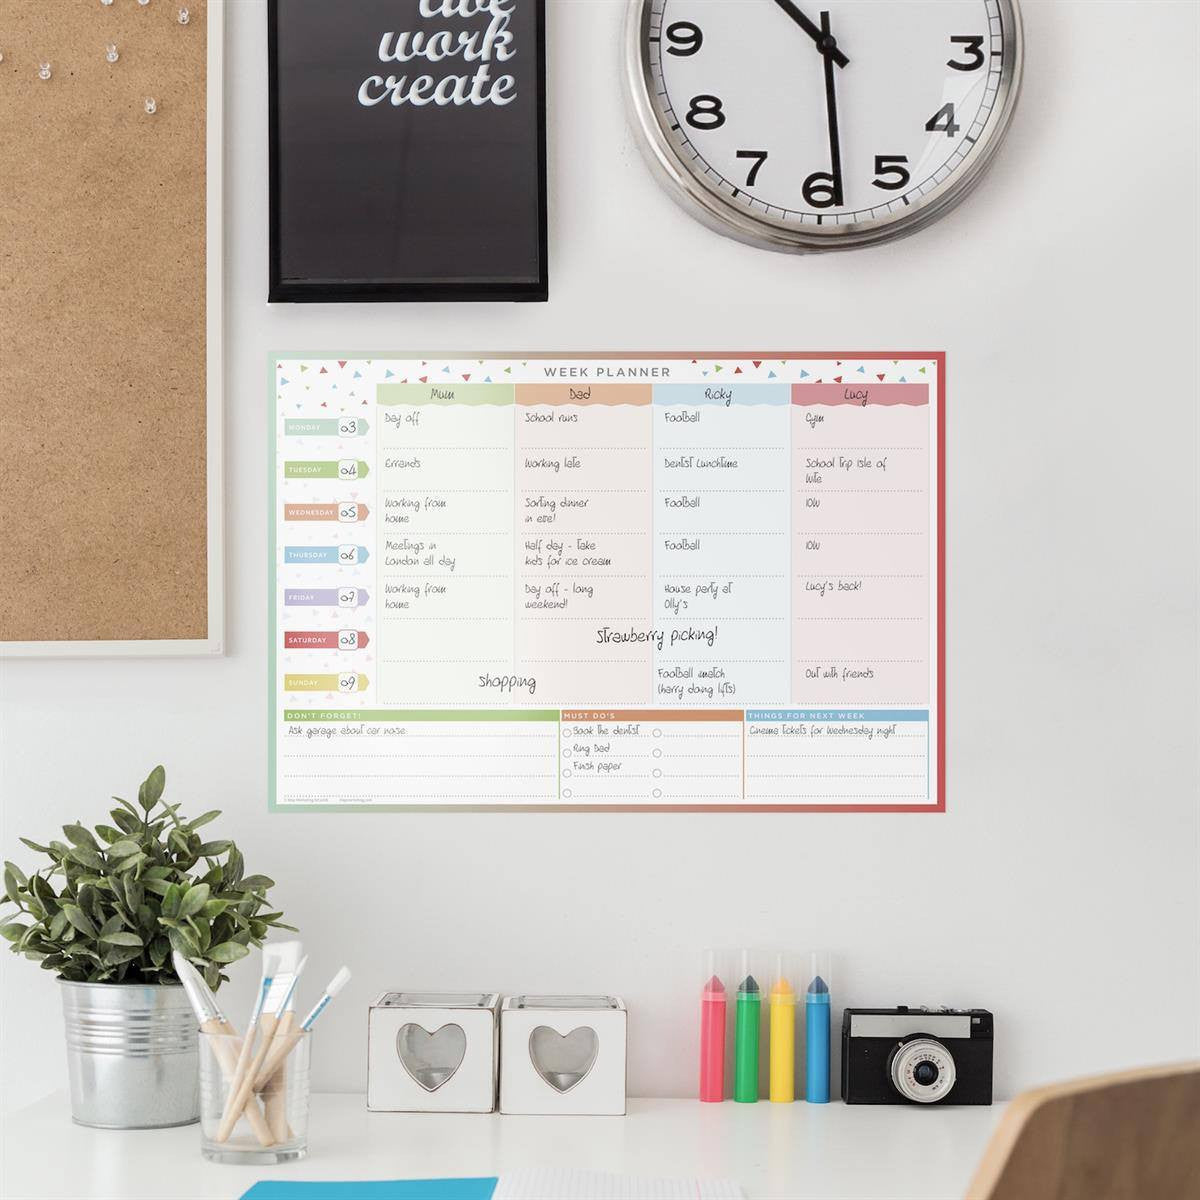 #4! Family Week Planner - Laminated Wall Planner